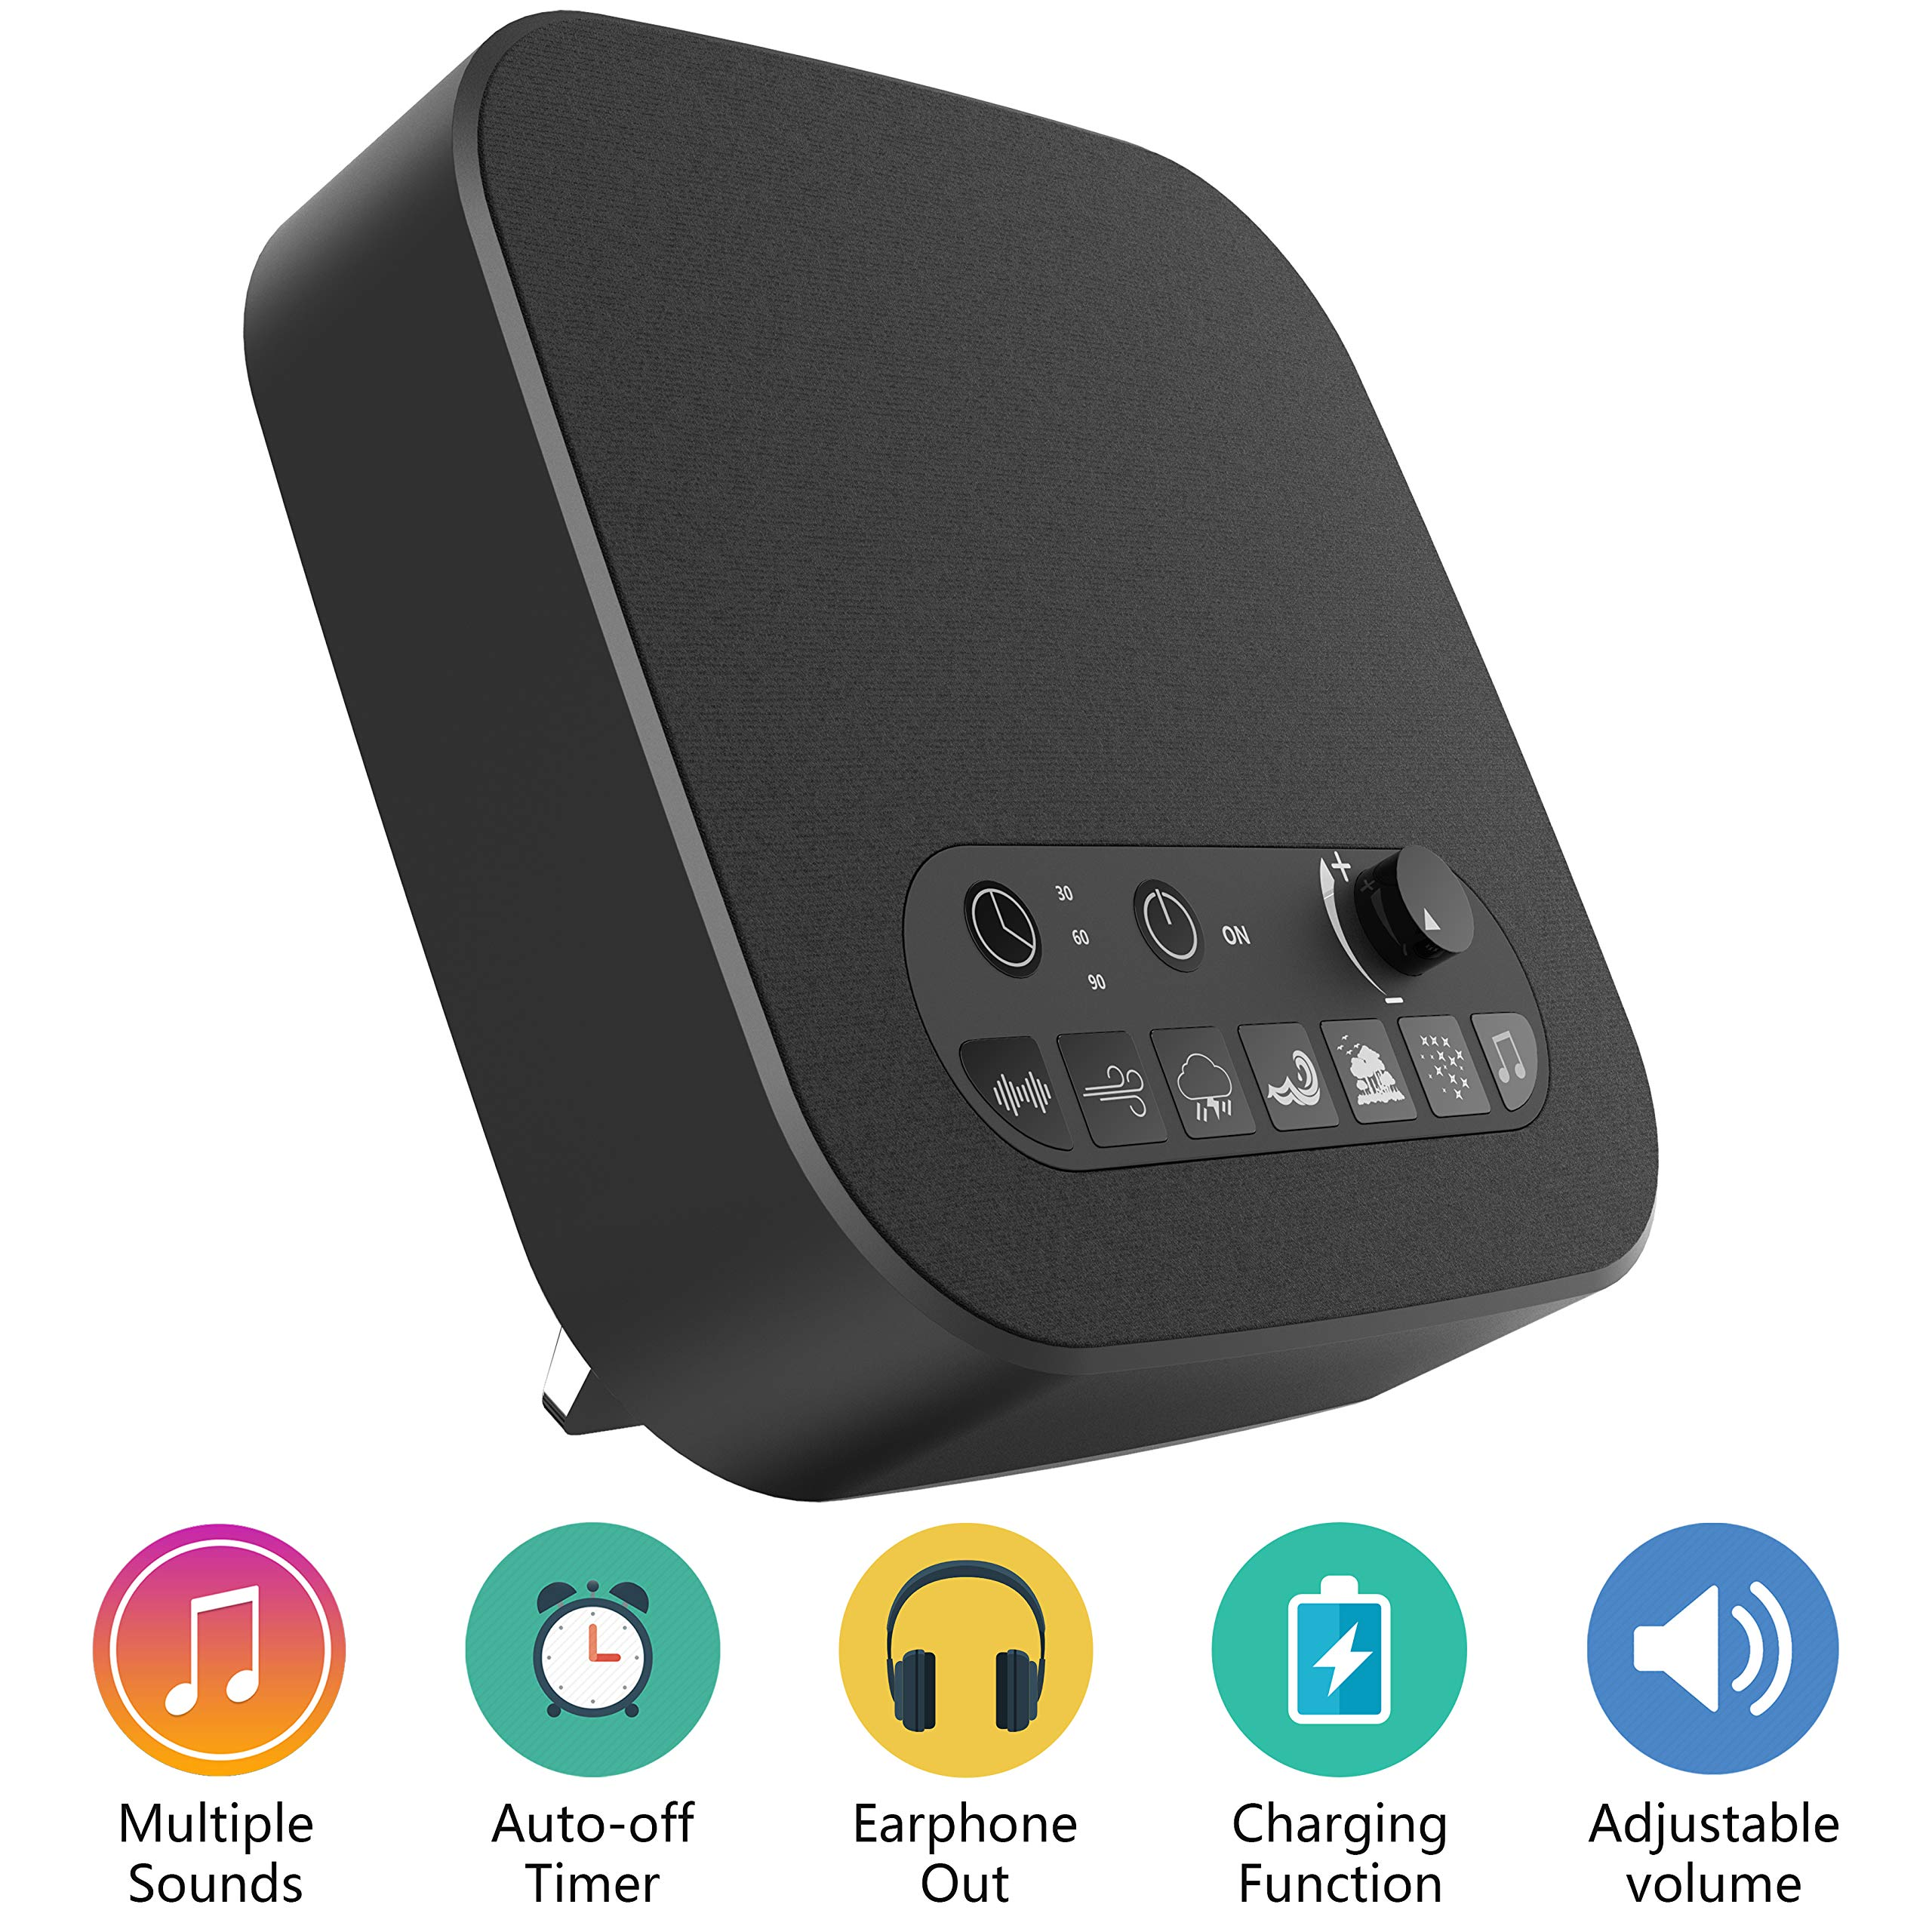 BESTHING White Noise Sound Machine with 7 Nature Sounds, USB Output Charger, Adjustable Volume, Headphone Jack and Auto-Off Timer (Black)